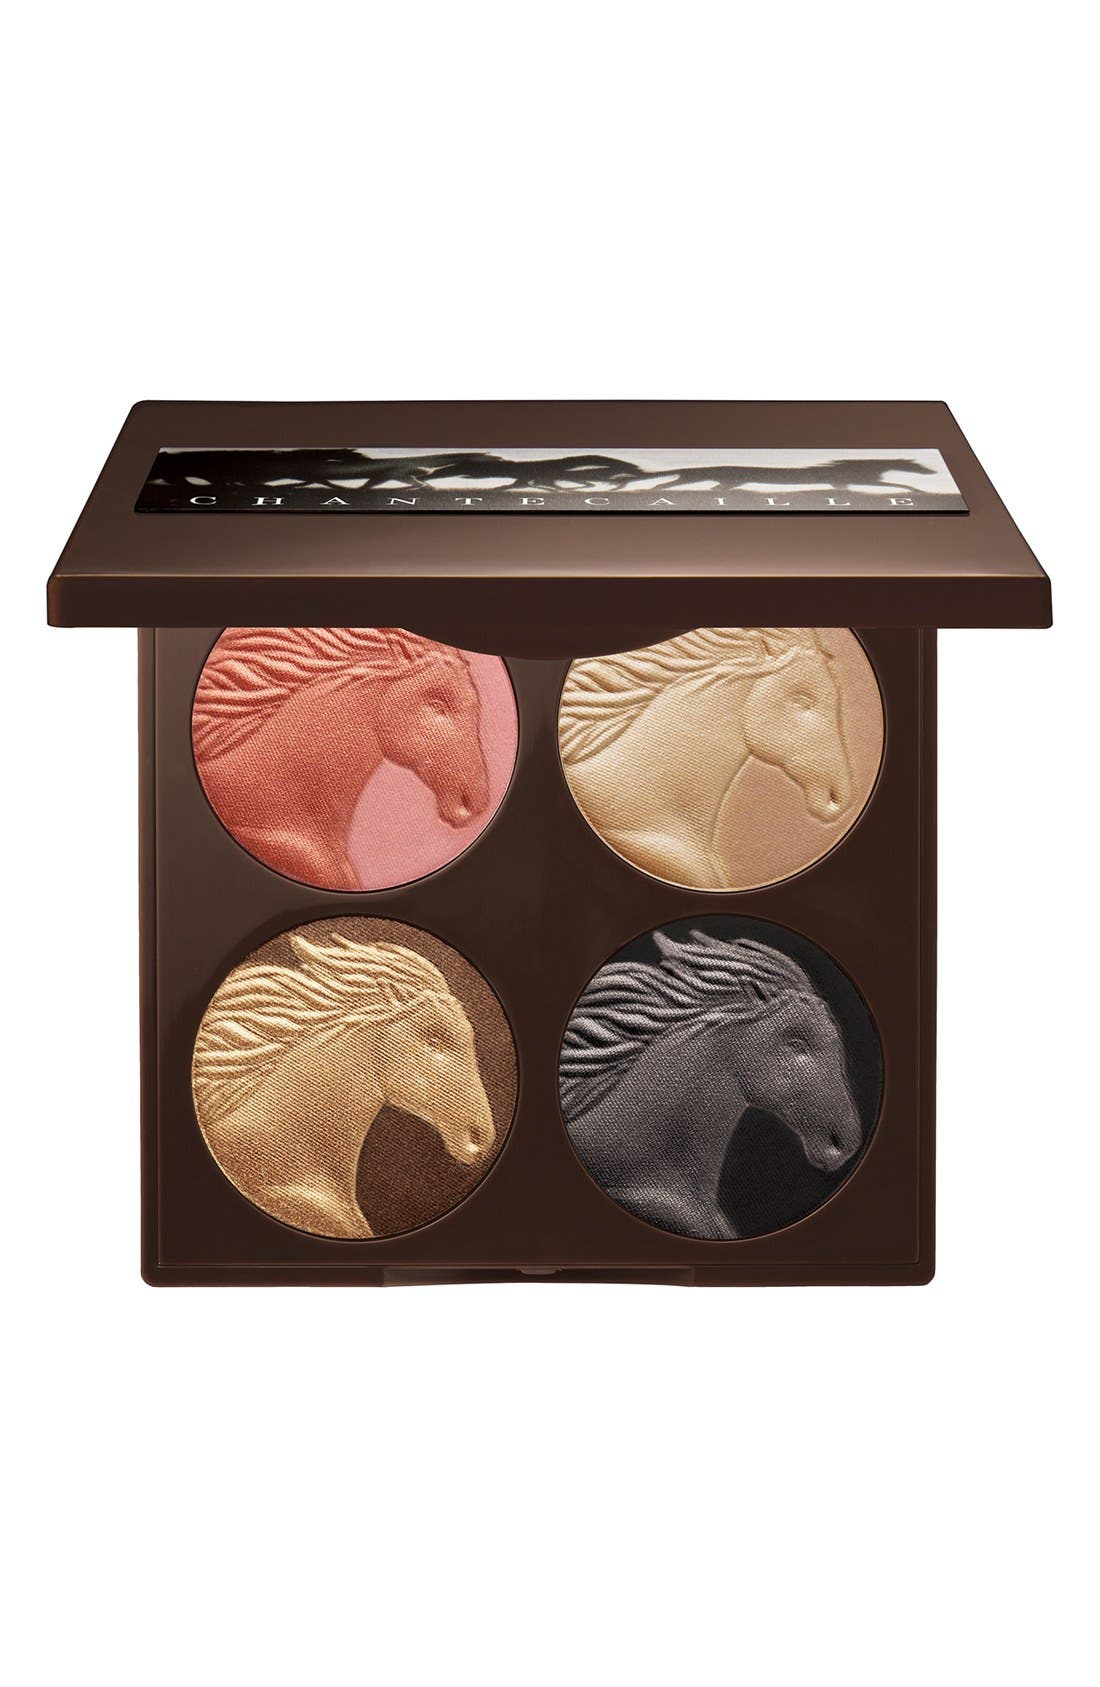 CHANTECAILLE 'Wild Horses' Eyeshadow & Blush Palette, Main, color, 250